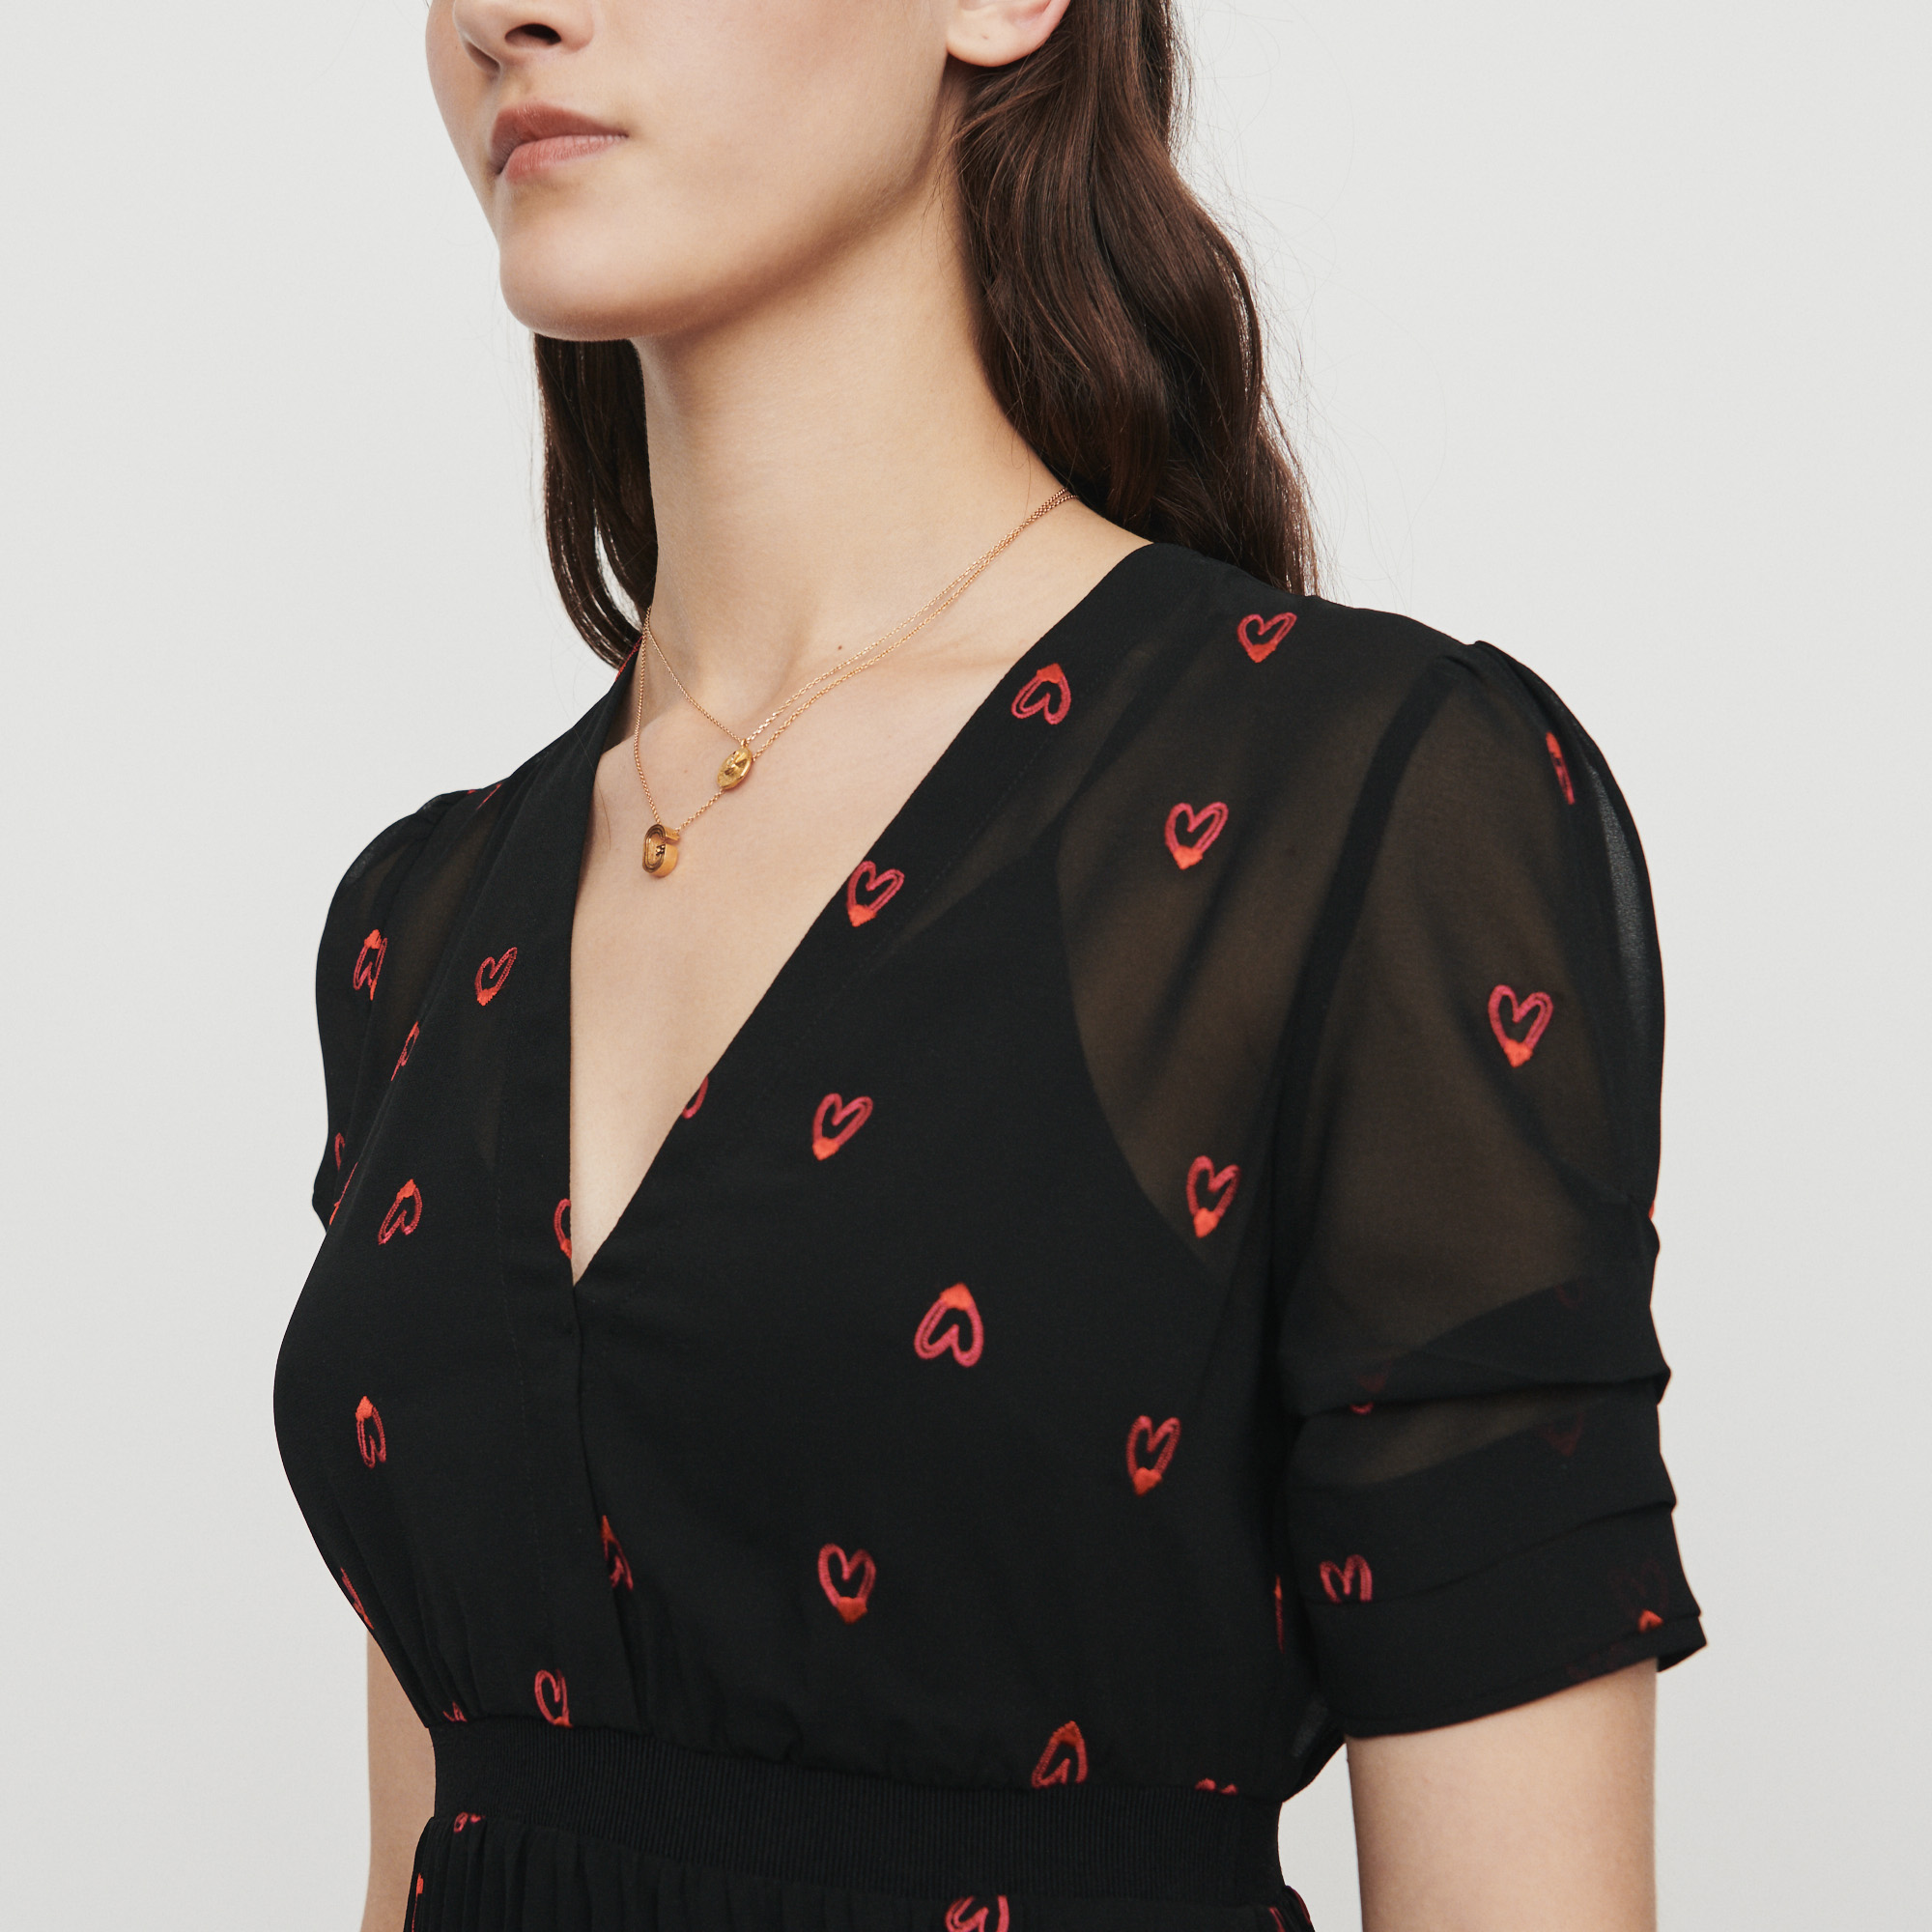 Dress with hearts embroidery - Black